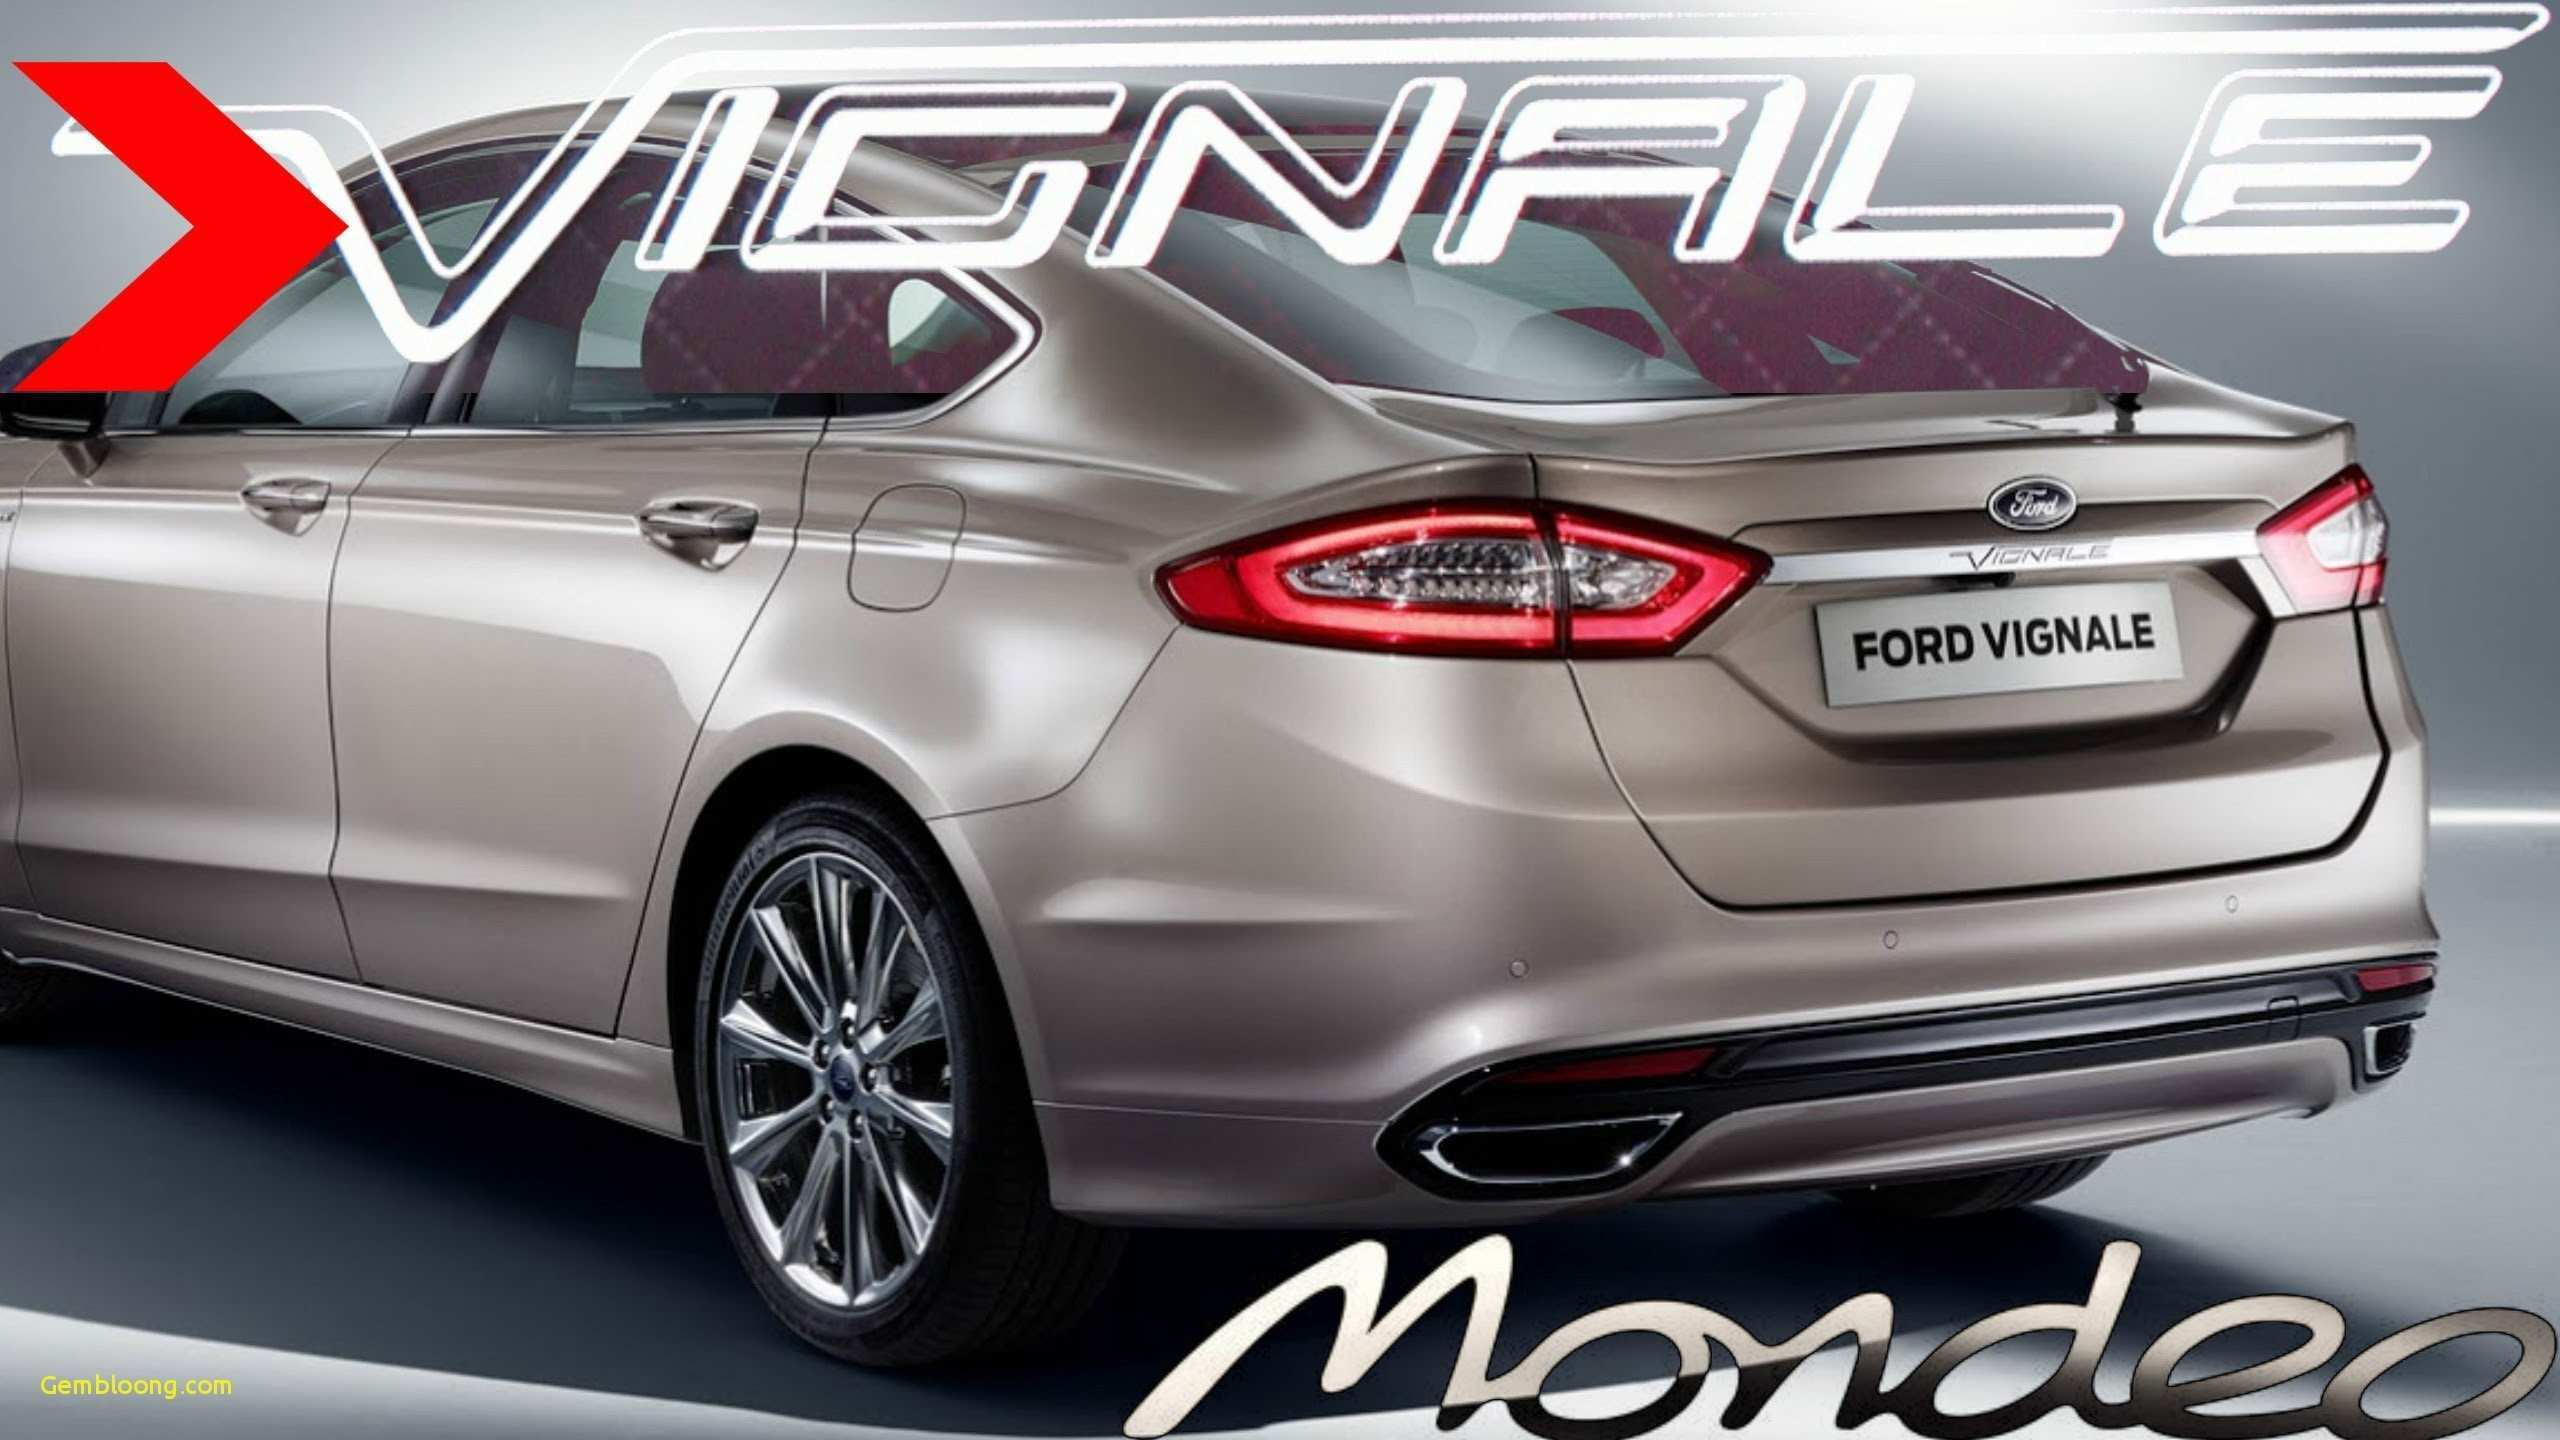 46 Best 2020 Ford Mondeo Vignale Images